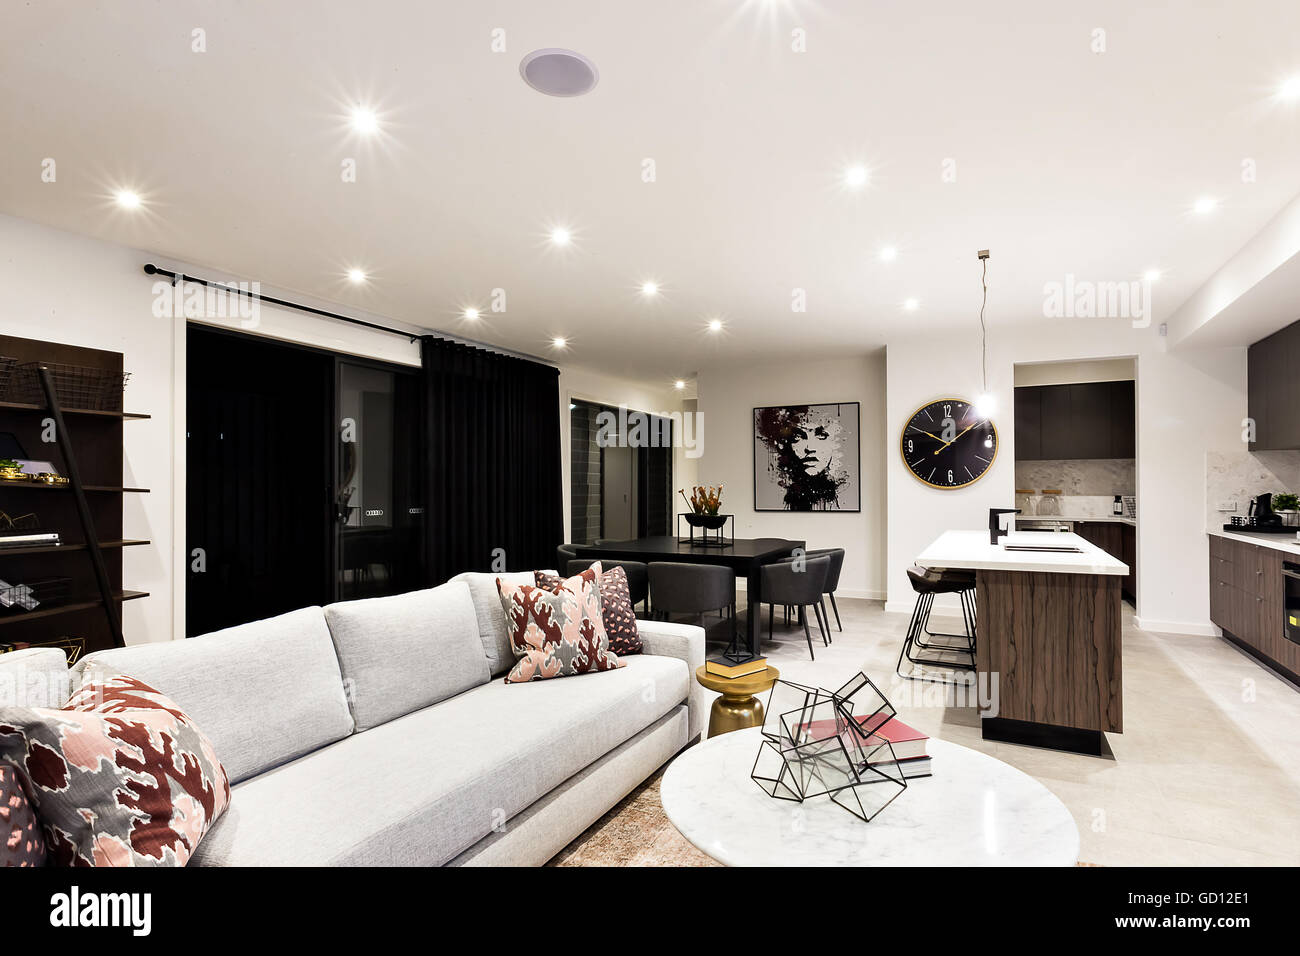 Luxury Living Room With Sofas And Pillows Beside Kitchen Counter Top Dining Table